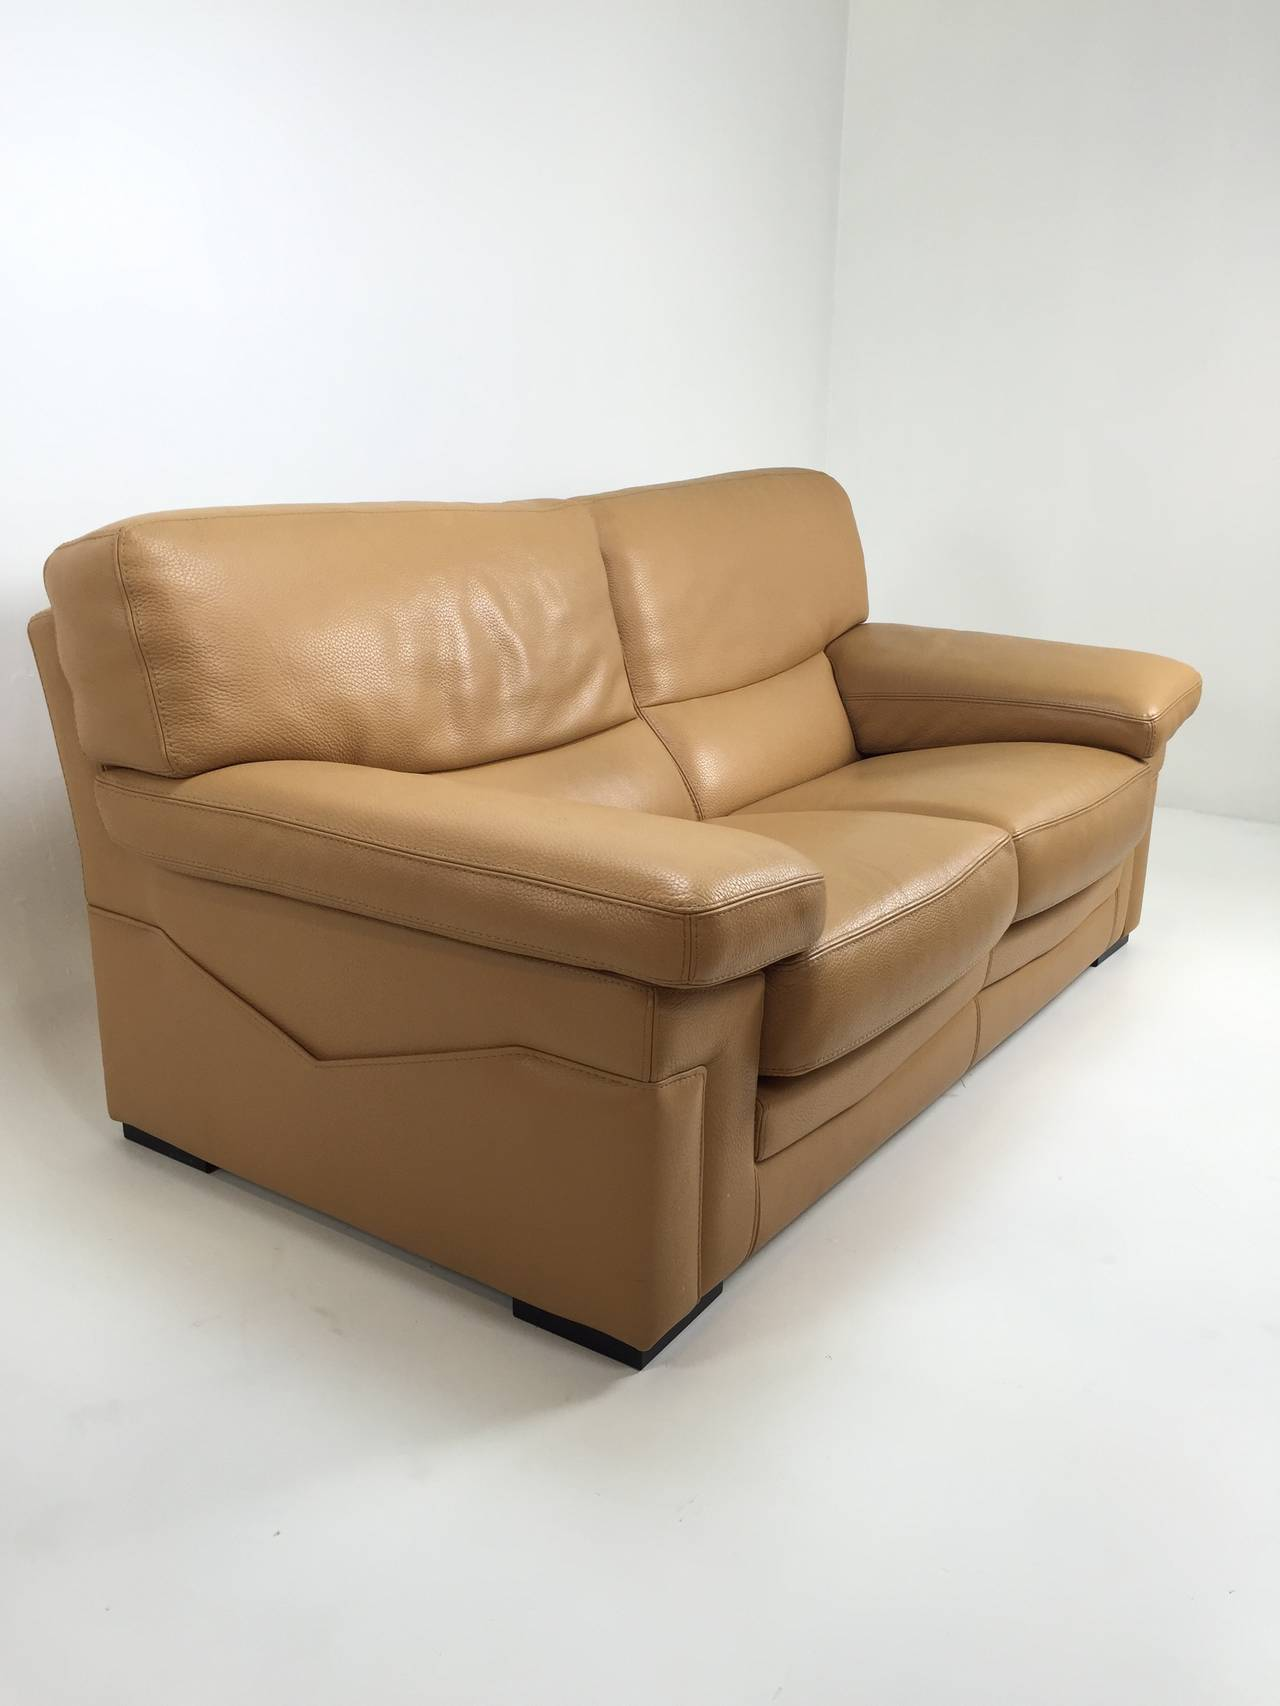 Pair of roche bobois sofas in caramel leather at 1stdibs for Chaise longue roche bobois